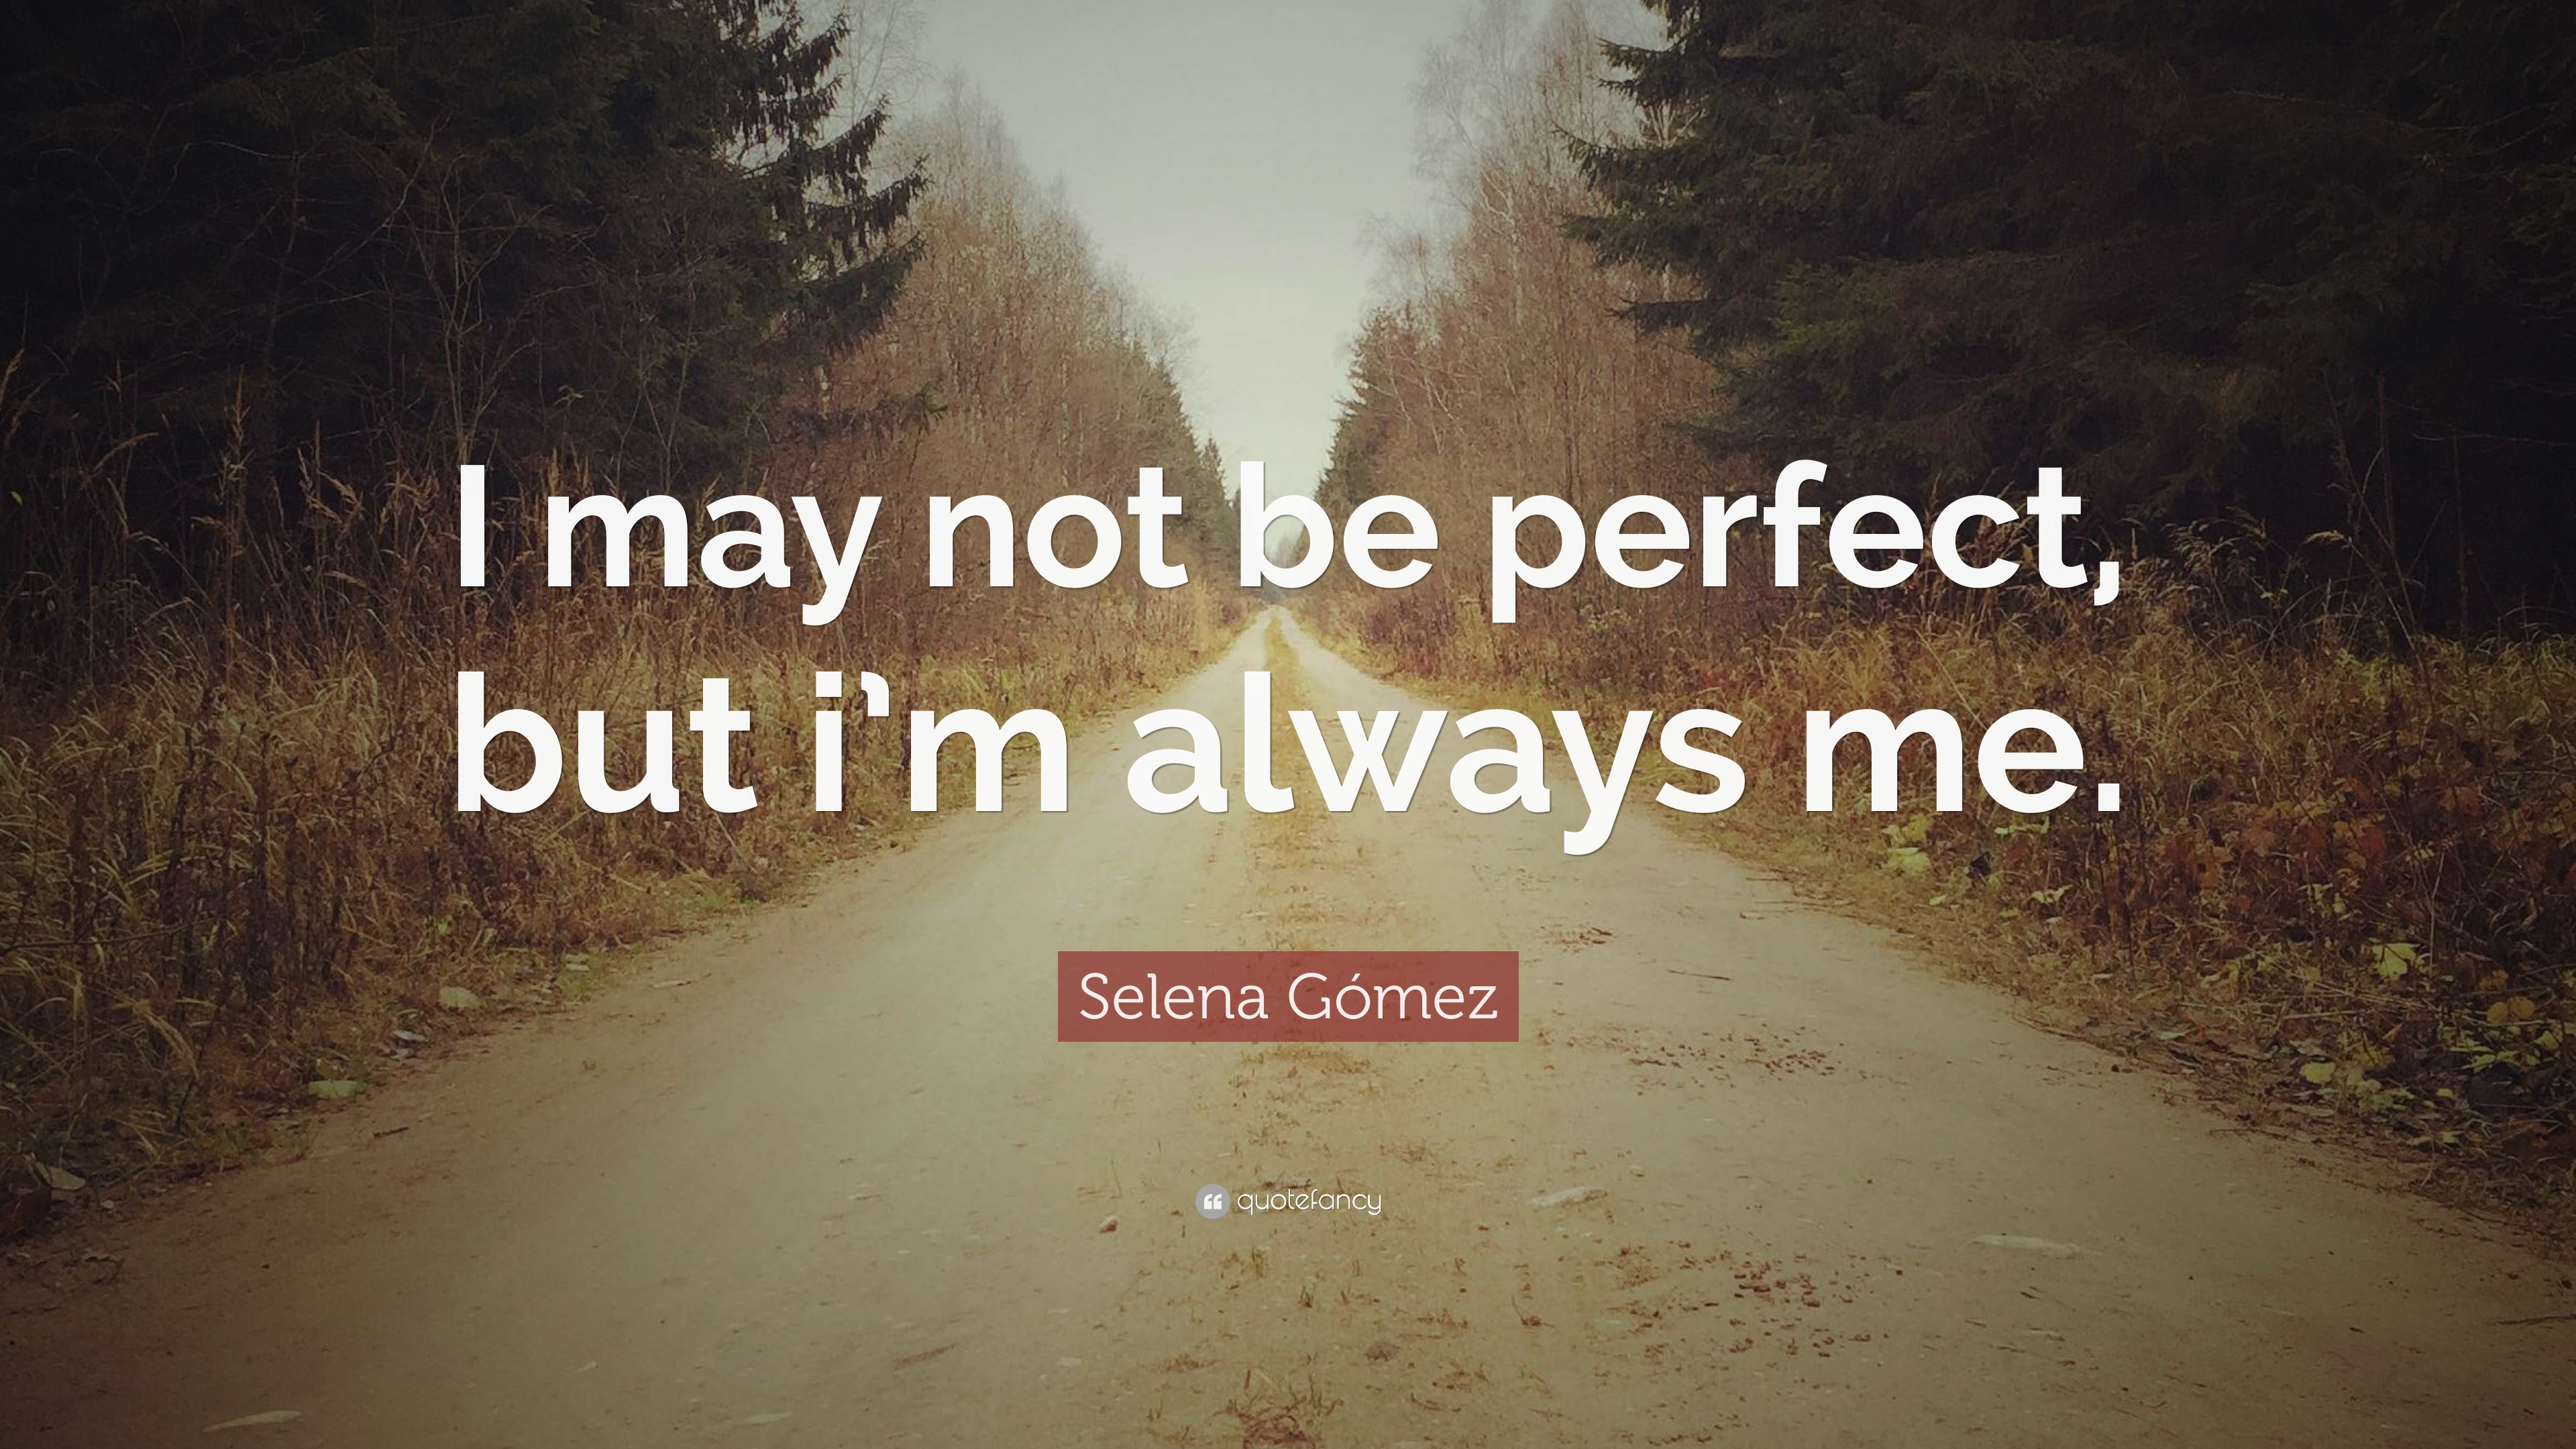 Selena Gómez Quotes (100 wallpapers) - Quotefancy